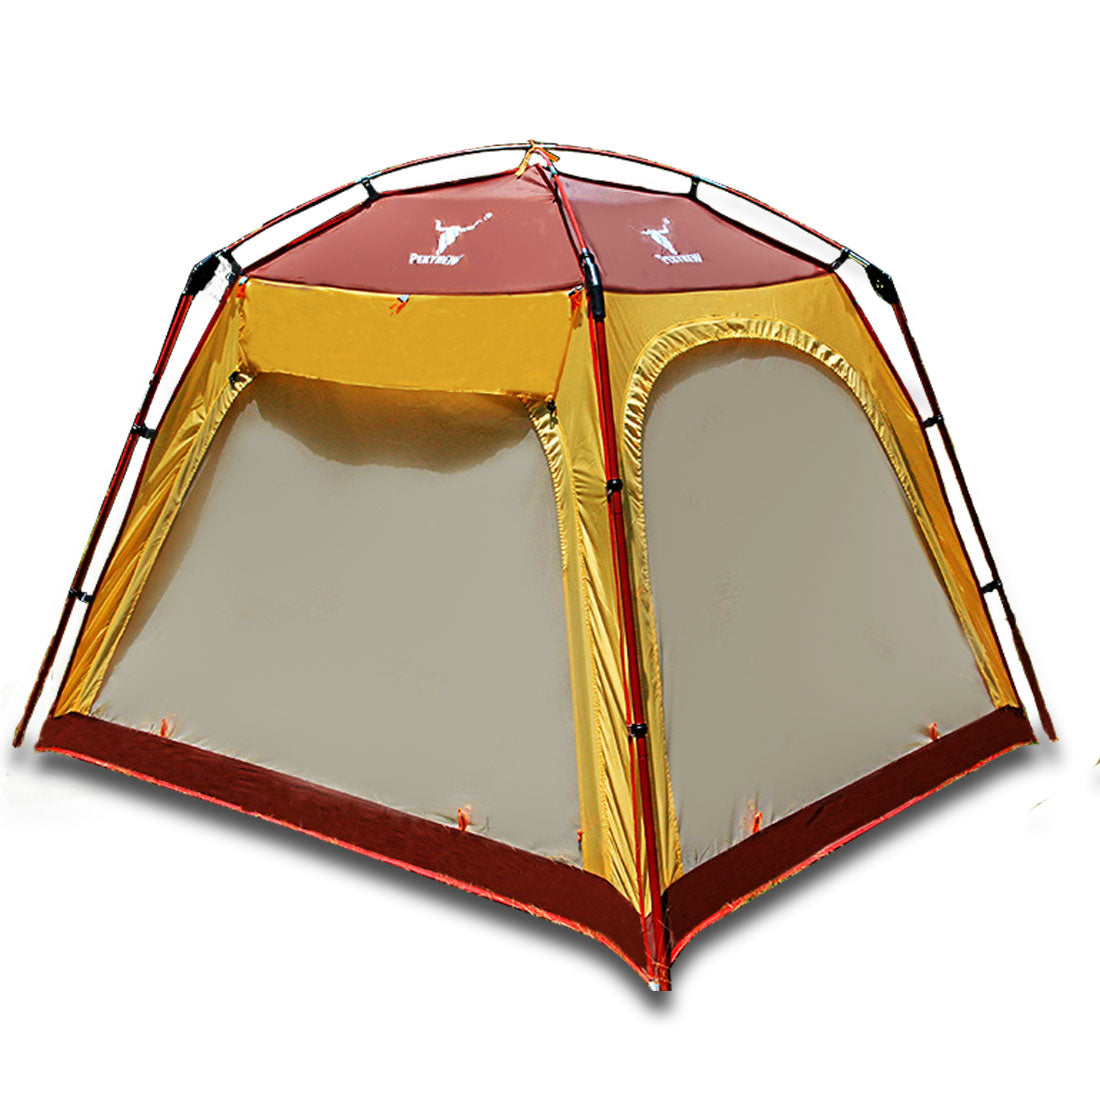 4 - 6 Person Man Family Camping Dome Tent Canvas Swag Hiking Beach Shade Shelter